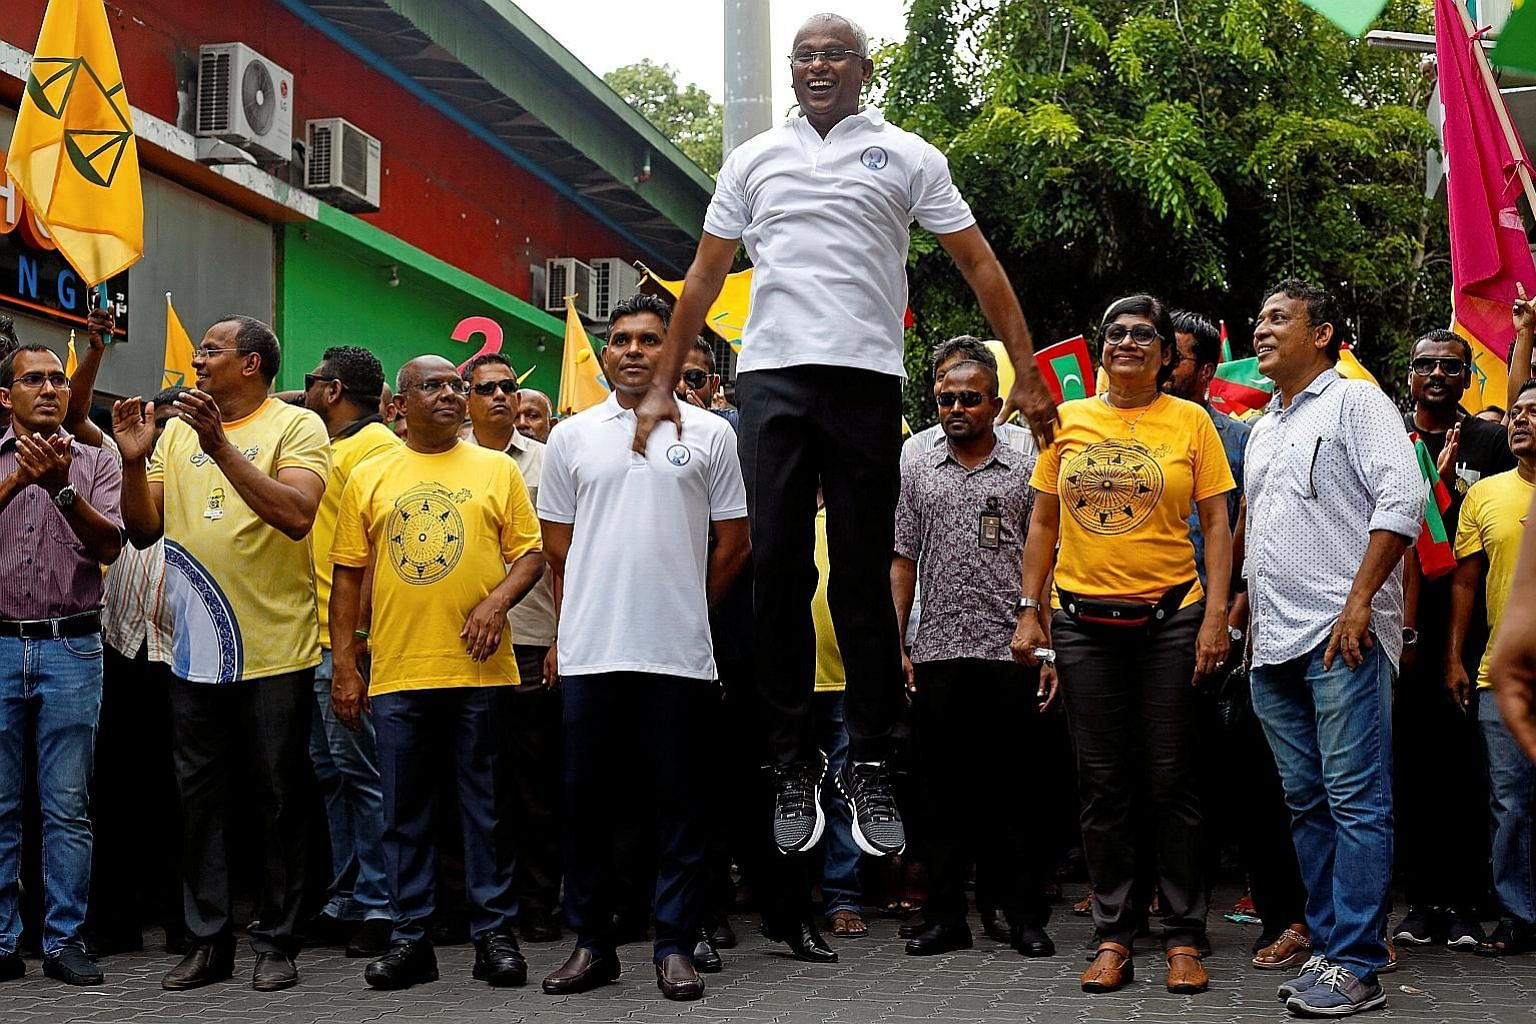 Mr Ibrahim Mohamed Solih of the Maldivian Democratic Party in an exuberant moment during campaigning in the Maldives' presidential election last week. The opposition candidate on Sunday won the election and the current president has conceded defeat a